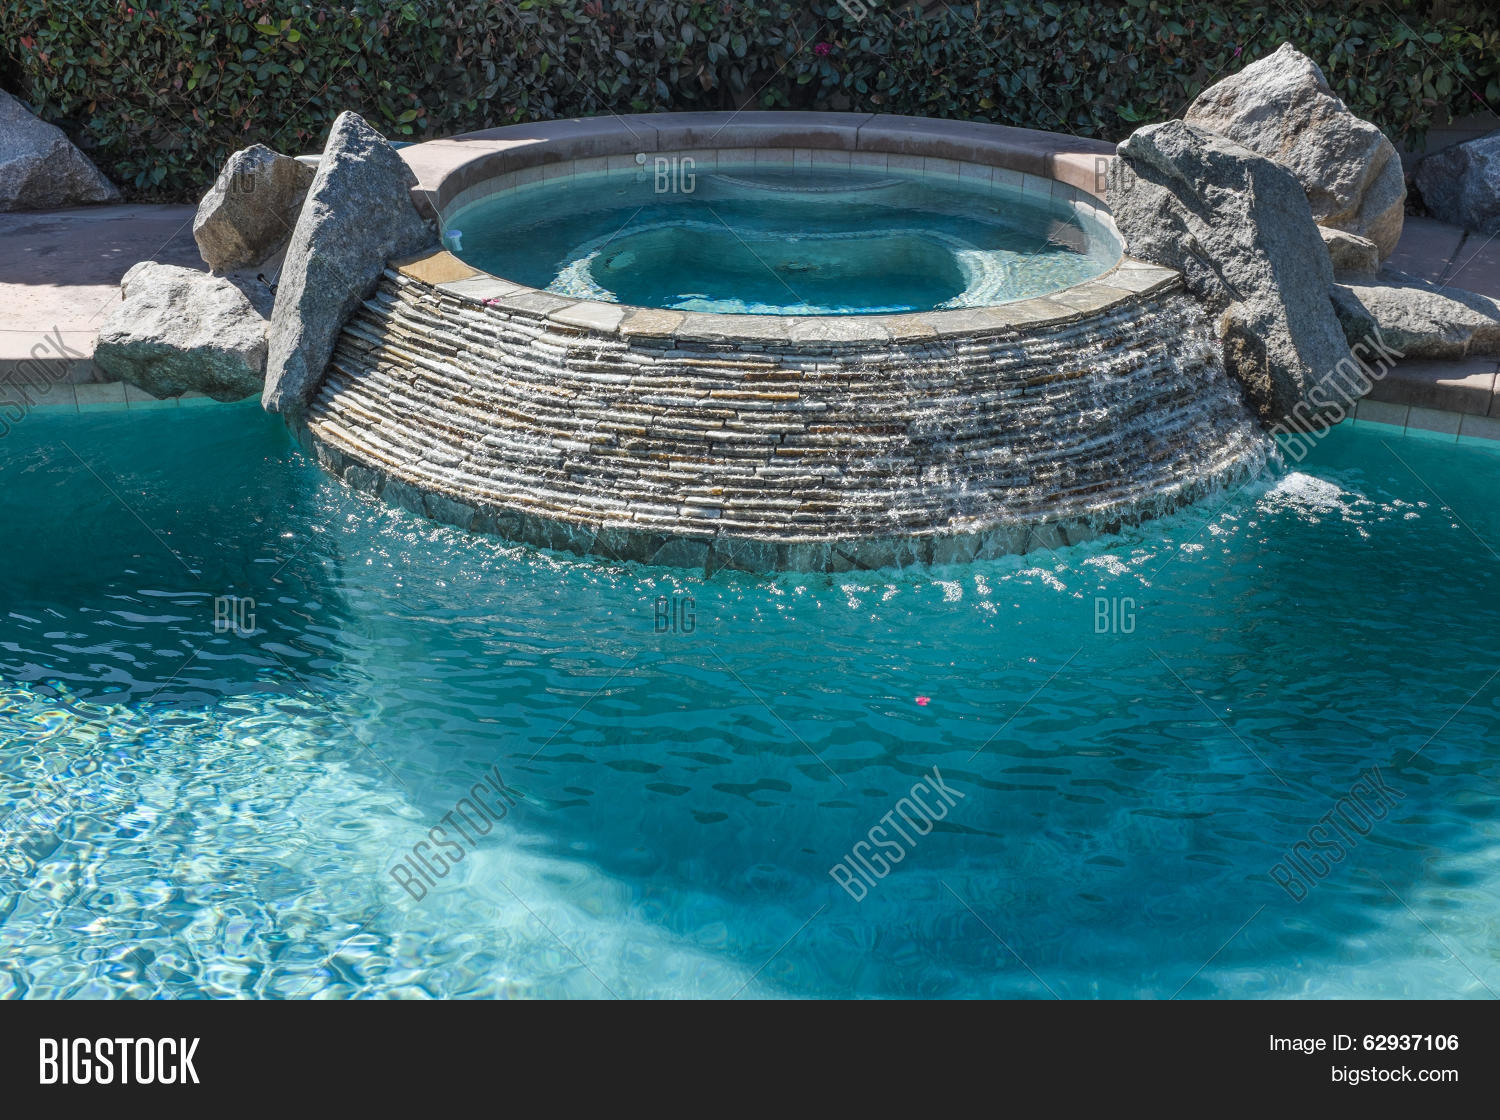 Jacuzzi In The Pool Hot Tub Swimming Pool Image Photo Free Trial Bigstock